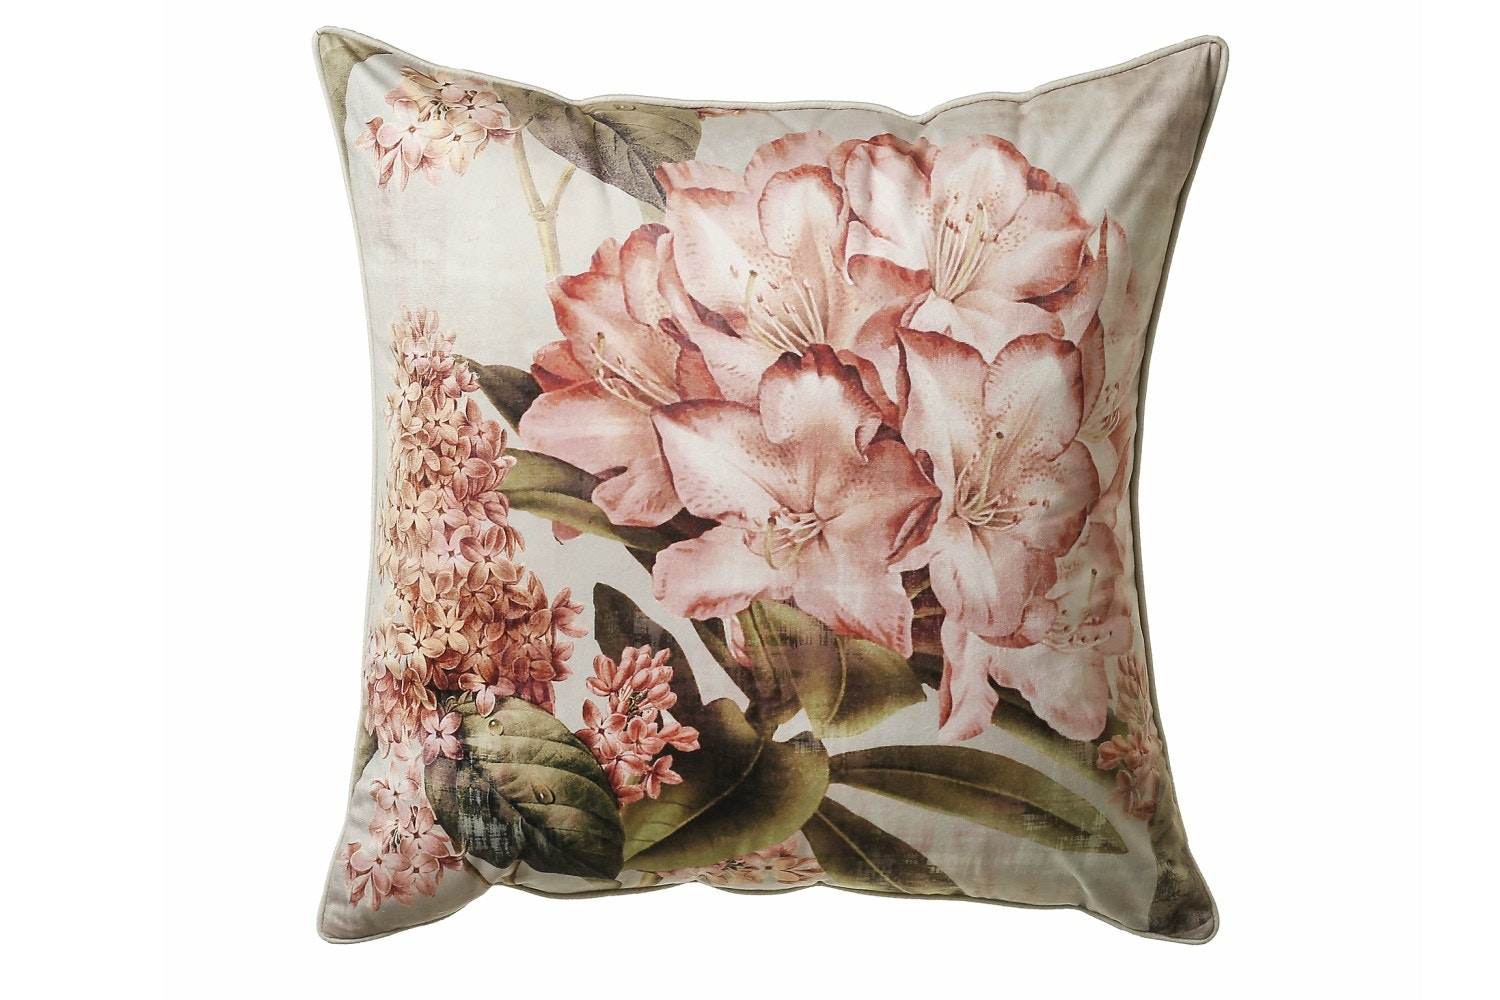 Scatterbox Botanical Blush Peach Cushion |  58X58cm